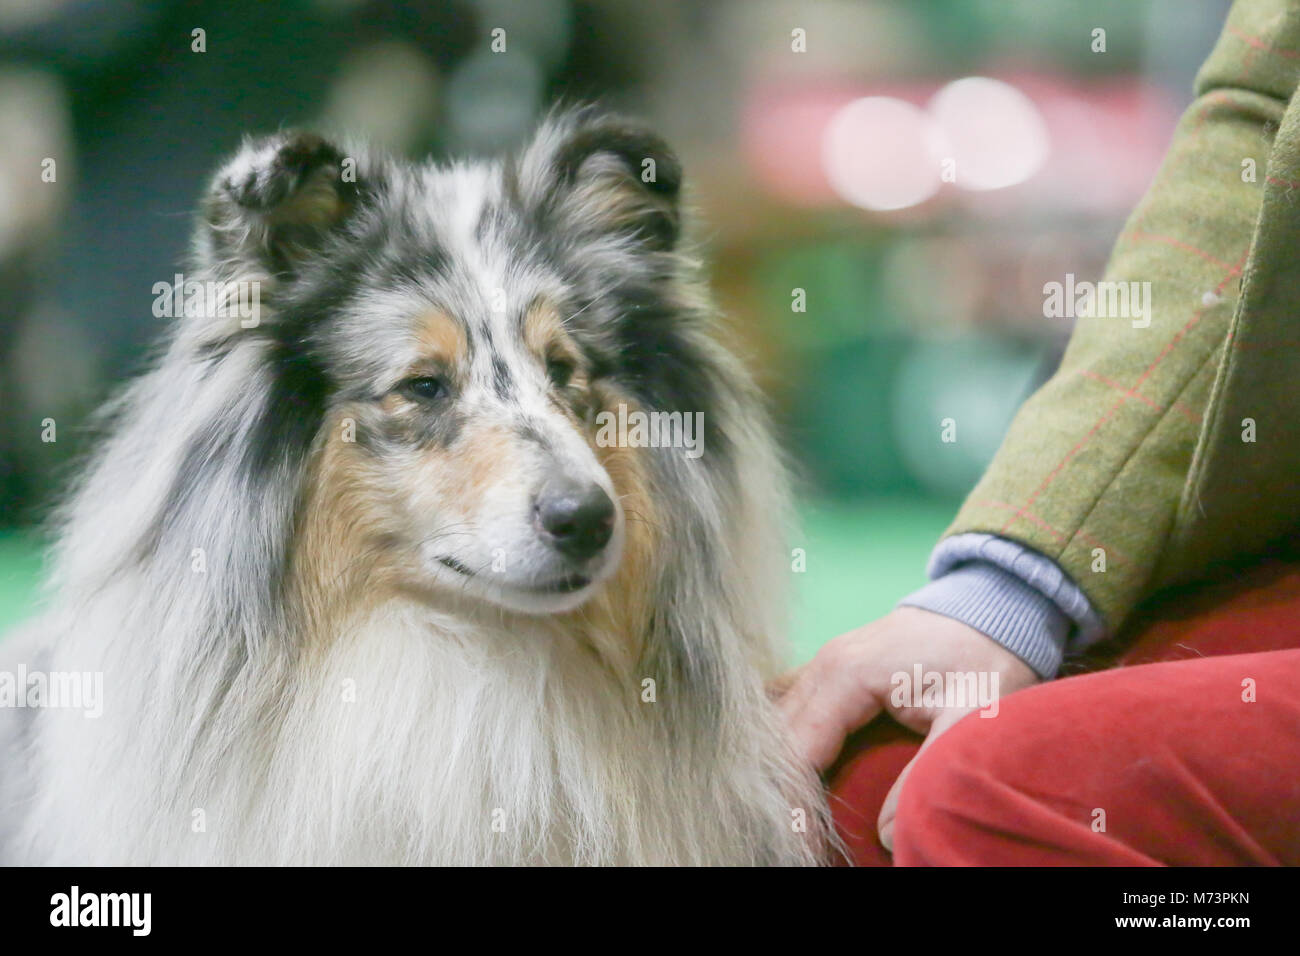 Birmingham, UK. 8th Mar, 2018. On the first day of Crufts, the largest and most famous dog show in the world, a - Stock Image